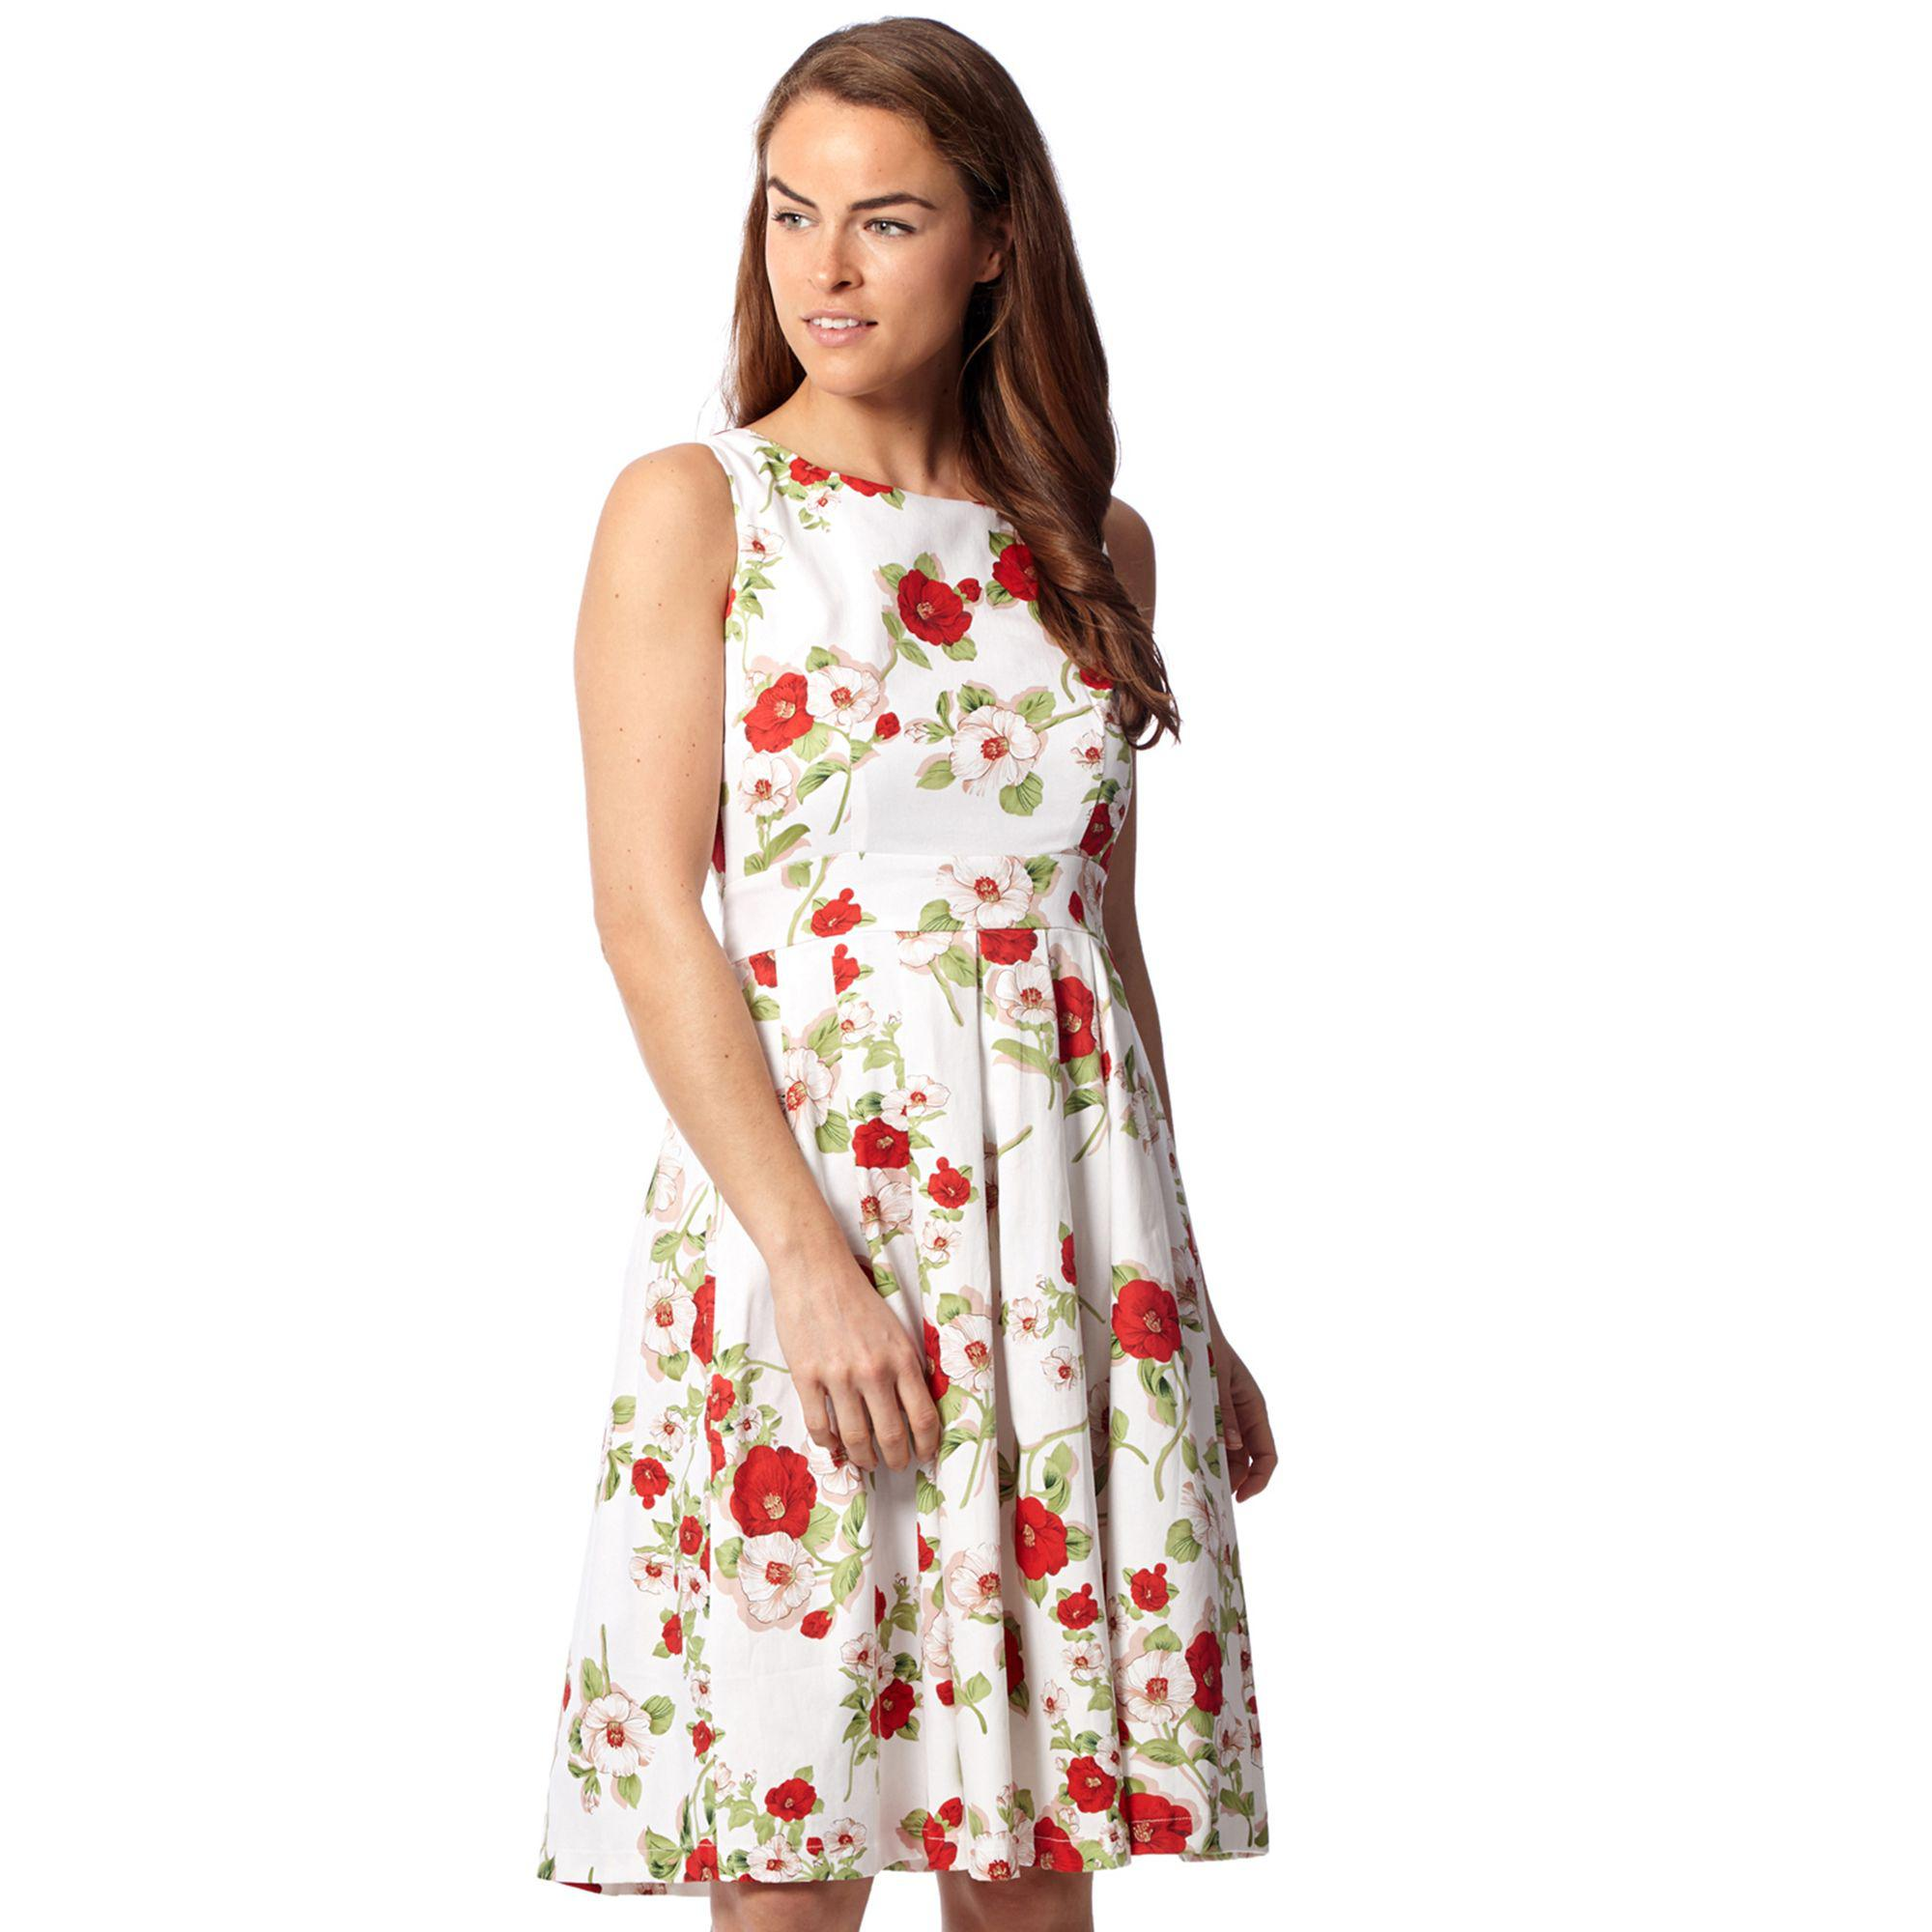 36ac41d1cf7 Izabel London White Floral Sleeveless Fit And Flare Dress in White ...